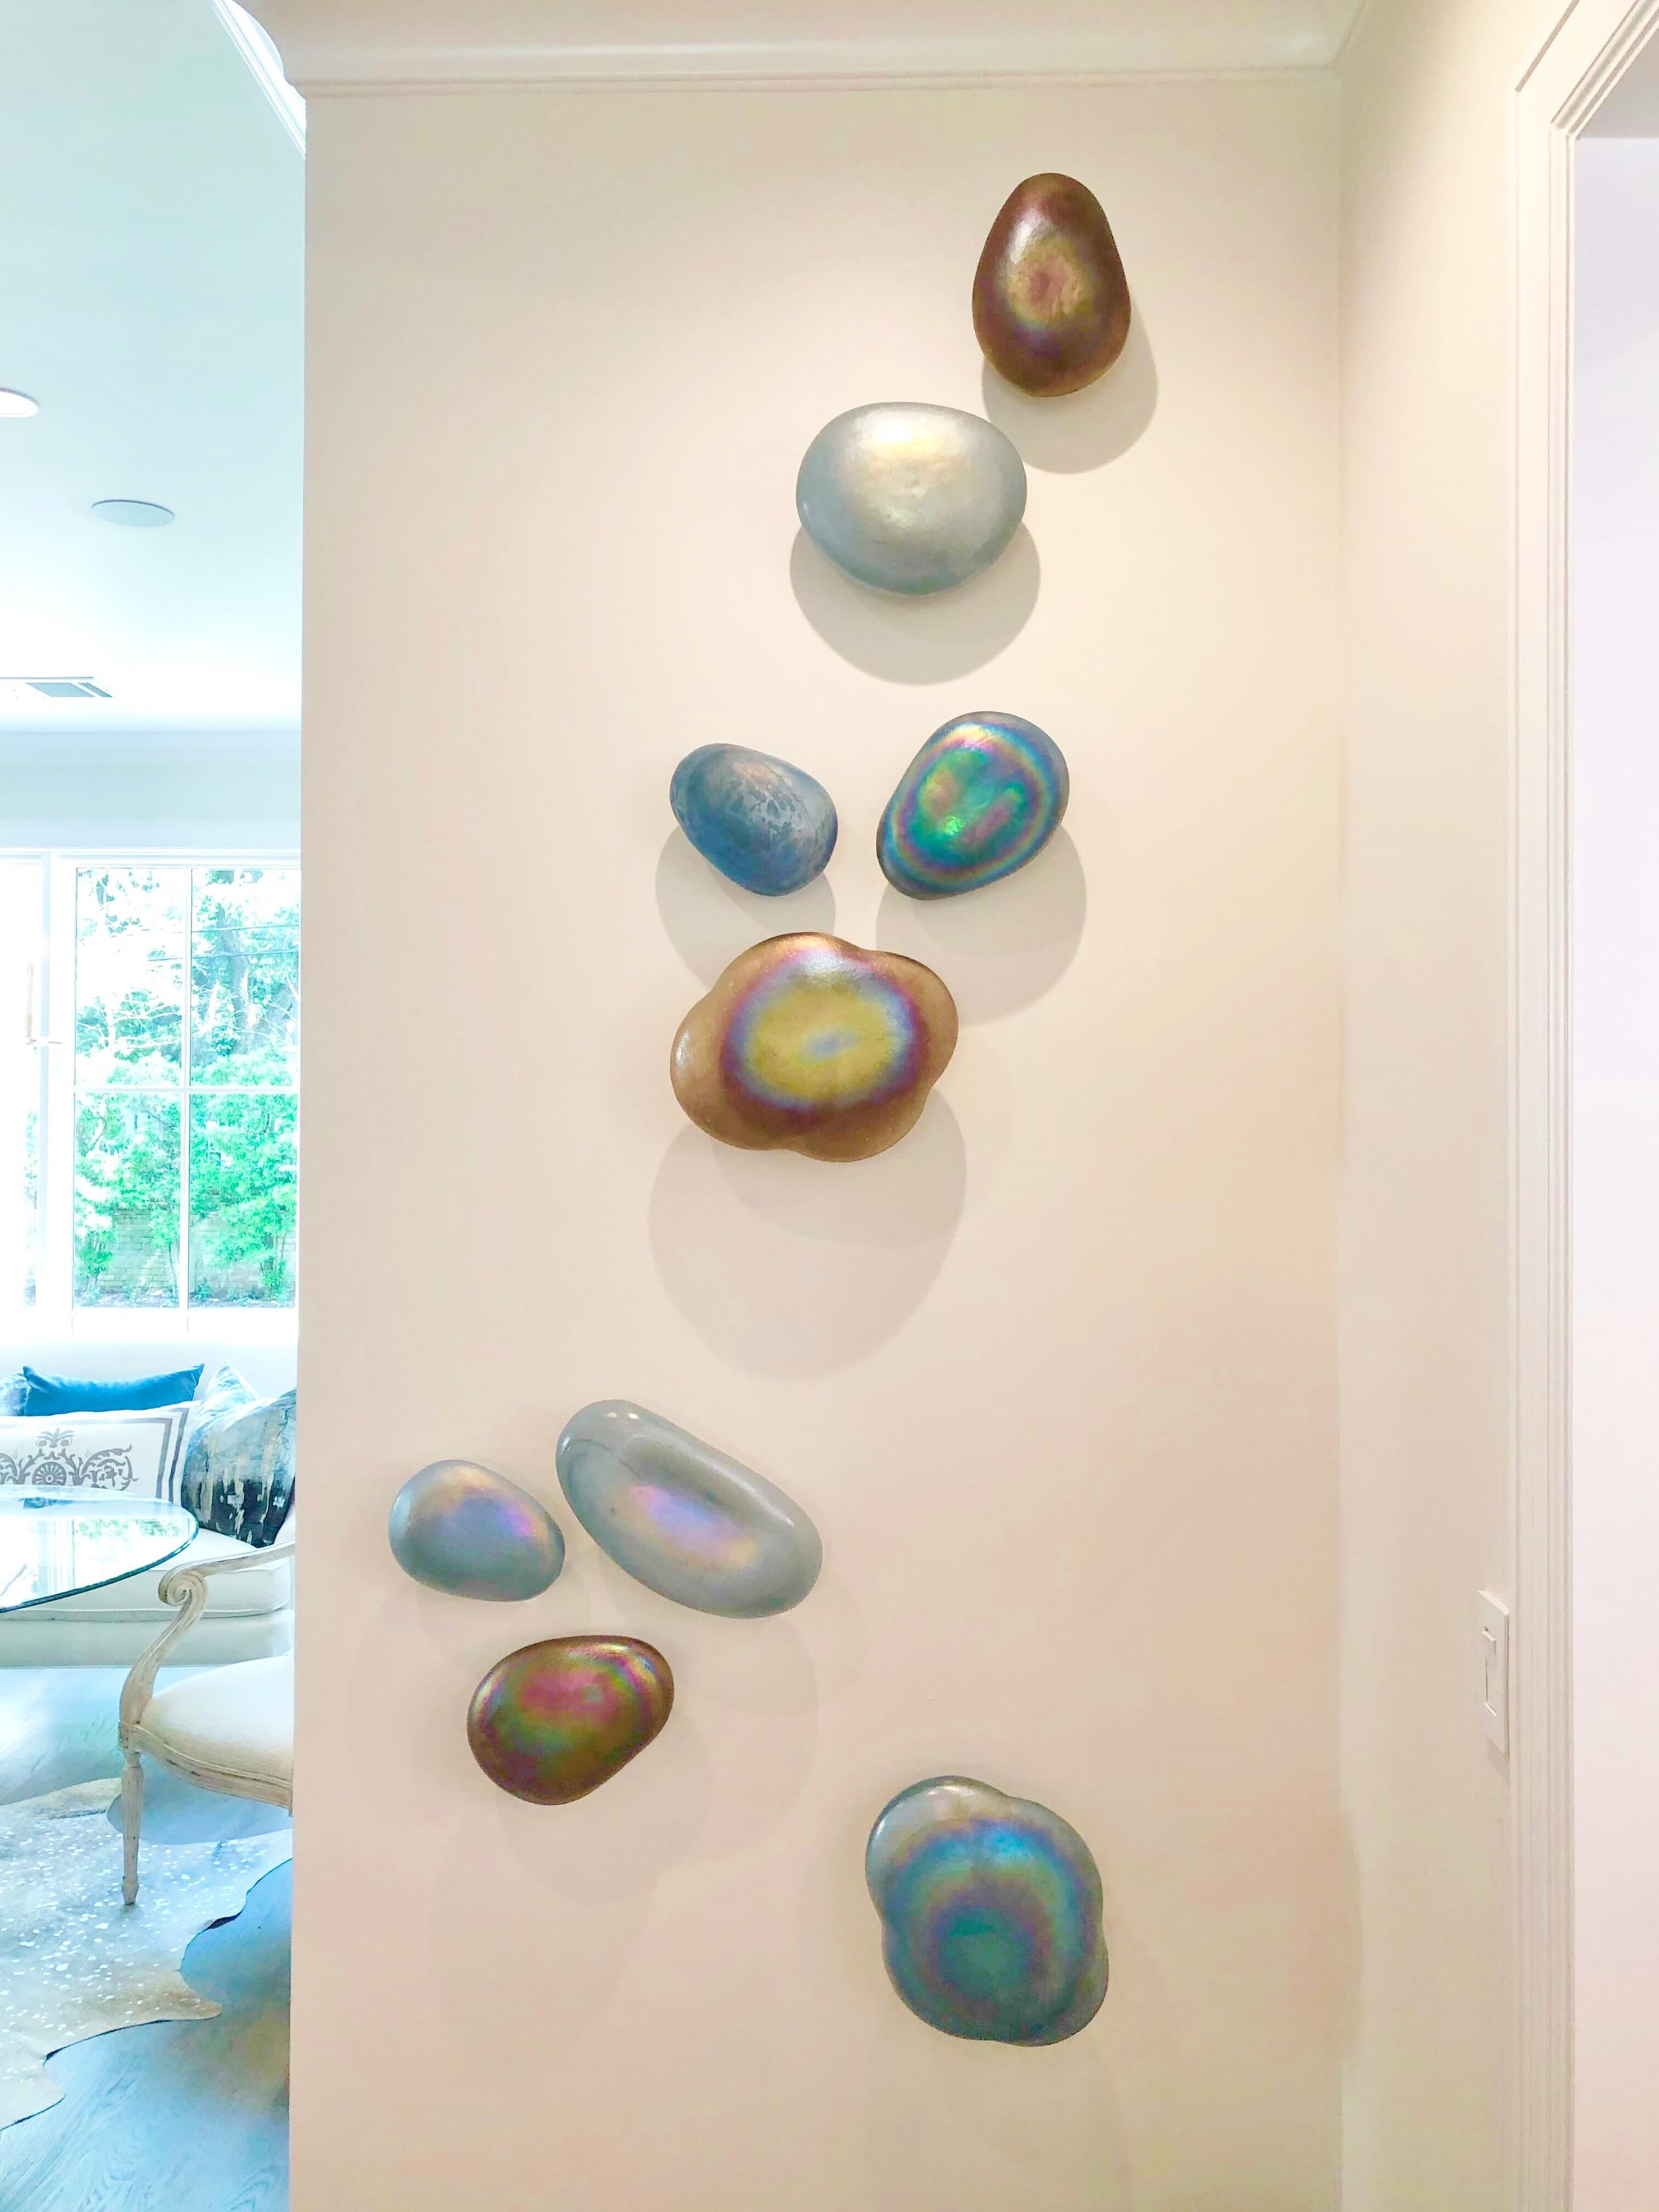 More gorgeous art in the family room designed by The Design Firm. These iridescent sculptural shapes can be artfully arranged in any kind of configuration to bring a fresh look to any space. ASID Showhouse, Houston. #art #walldecor